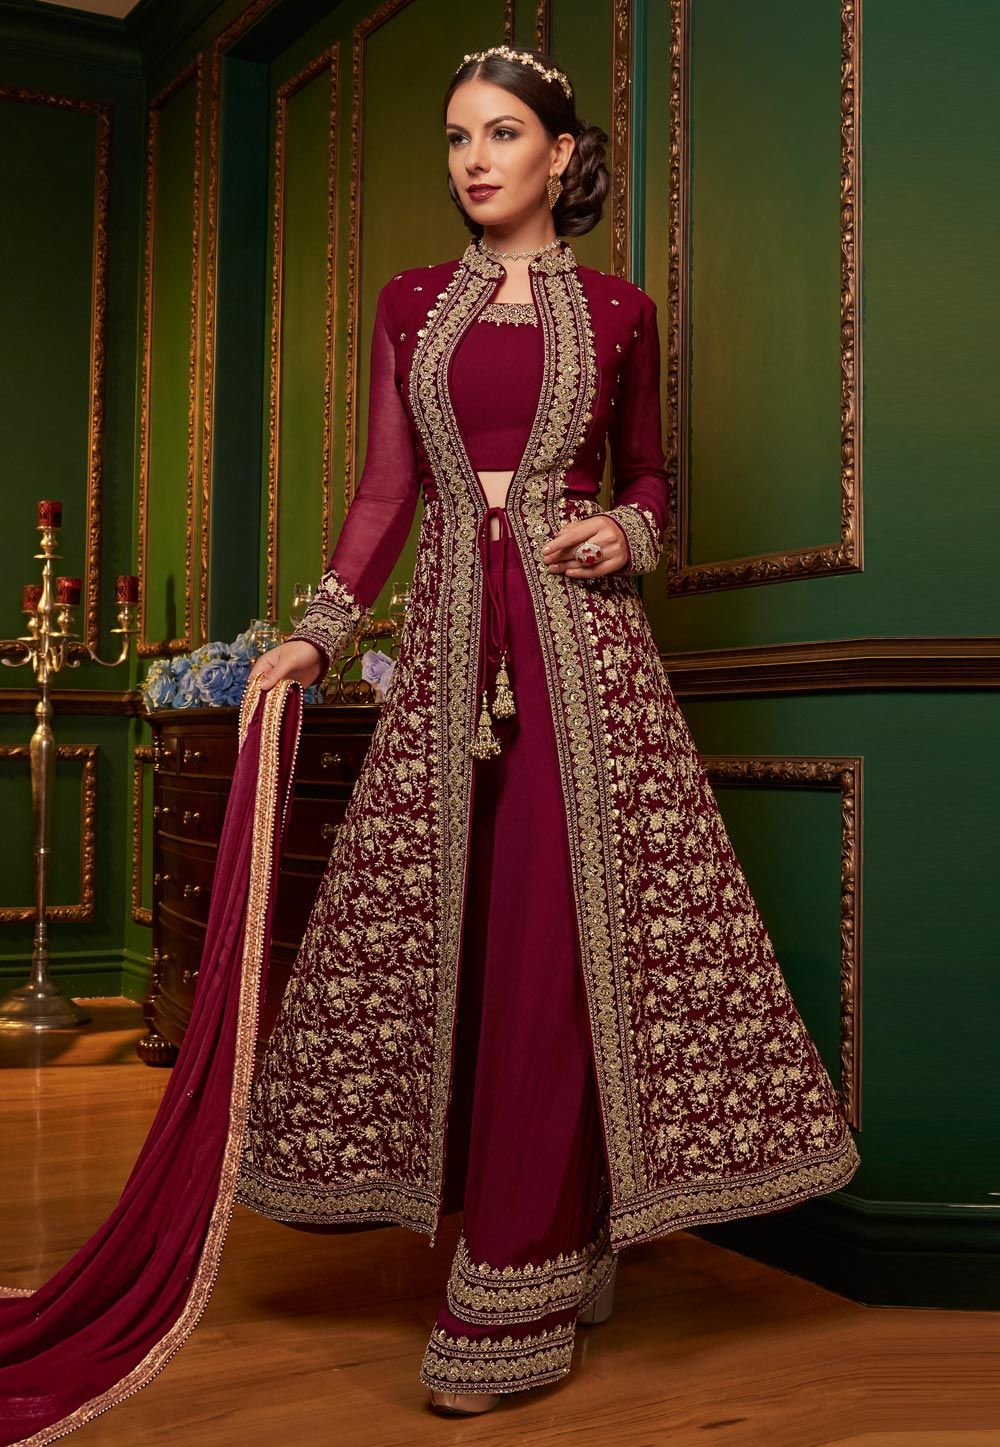 6143894e85 Buy Magenta Georgette Palazzo Style Suit 153796 online at lowest price from  huge collection of salwar kameez at Indianclothstore.com.